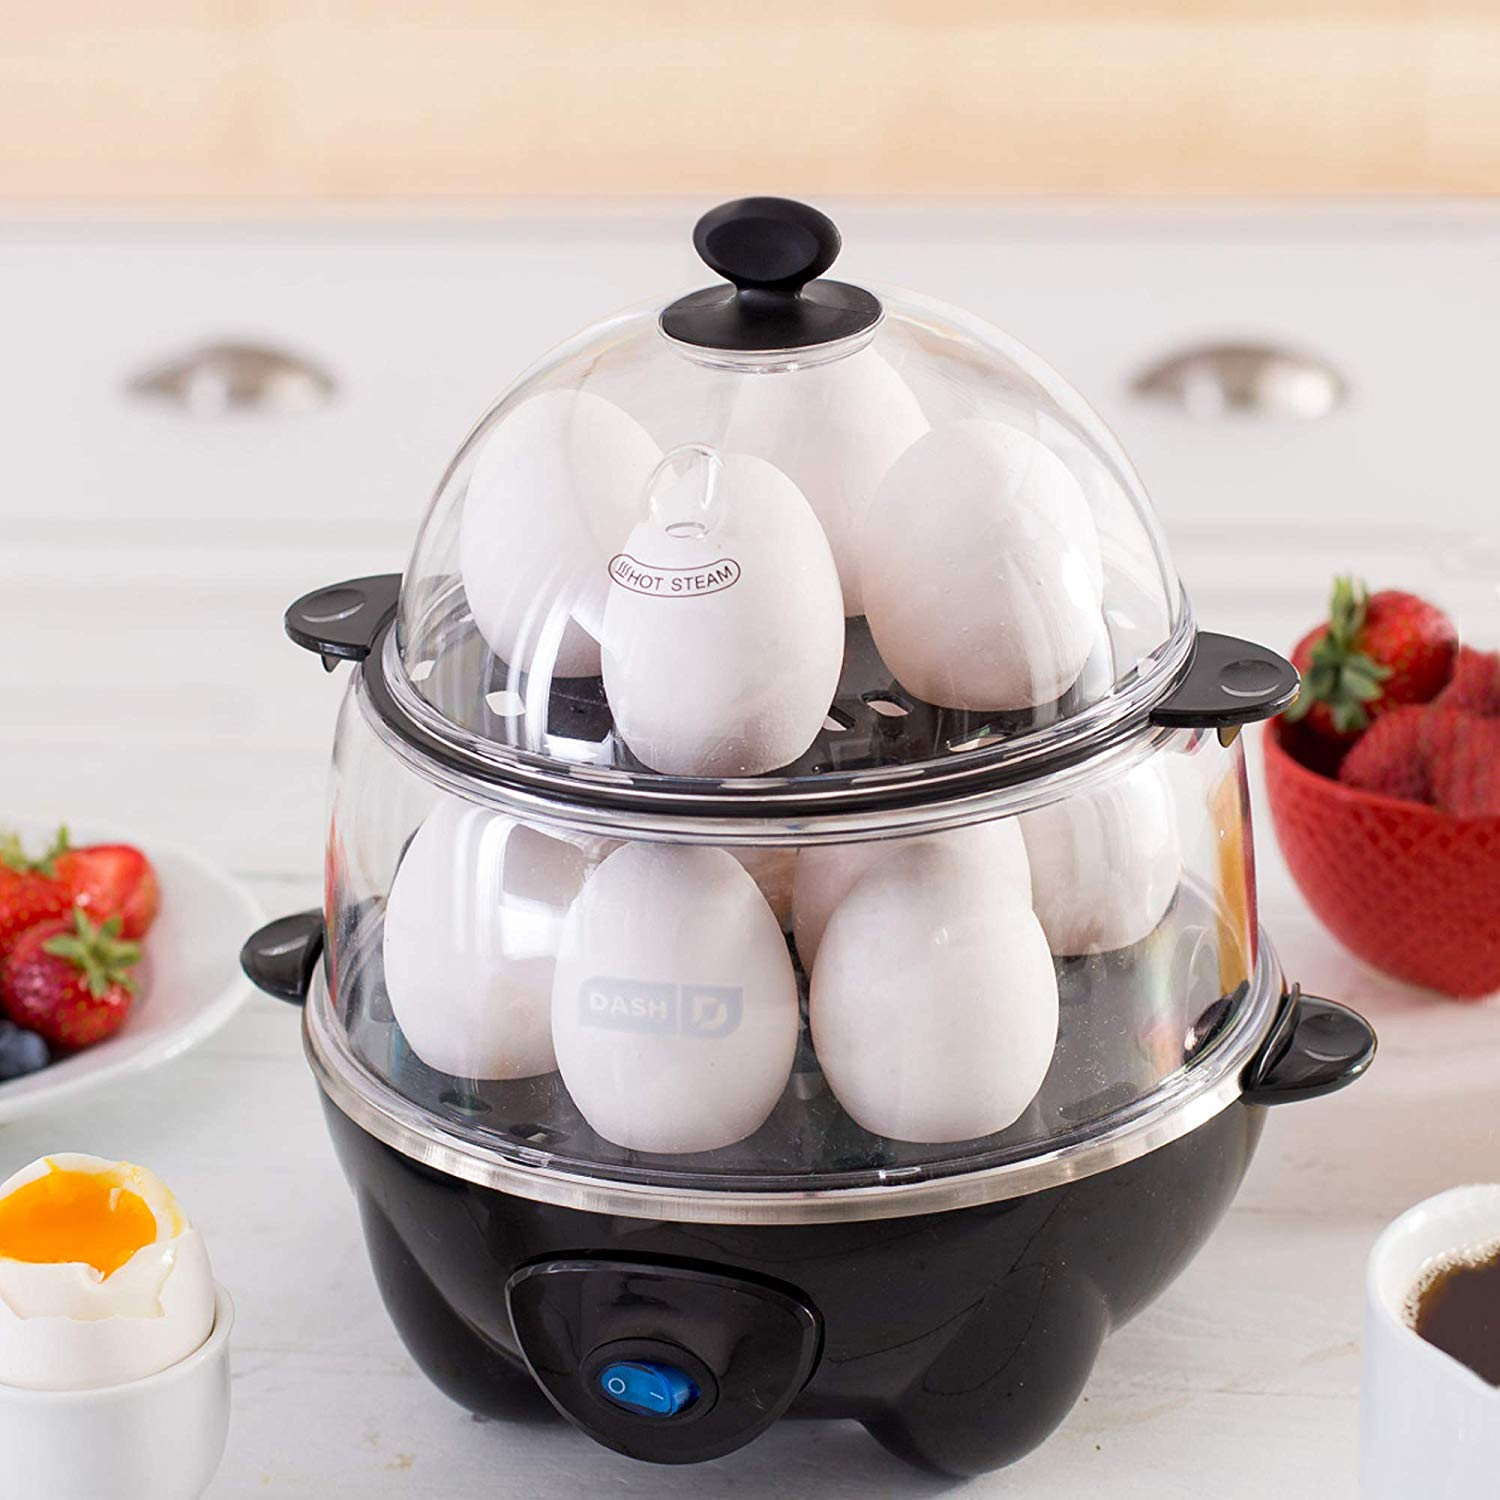 dash egg cooker amazon